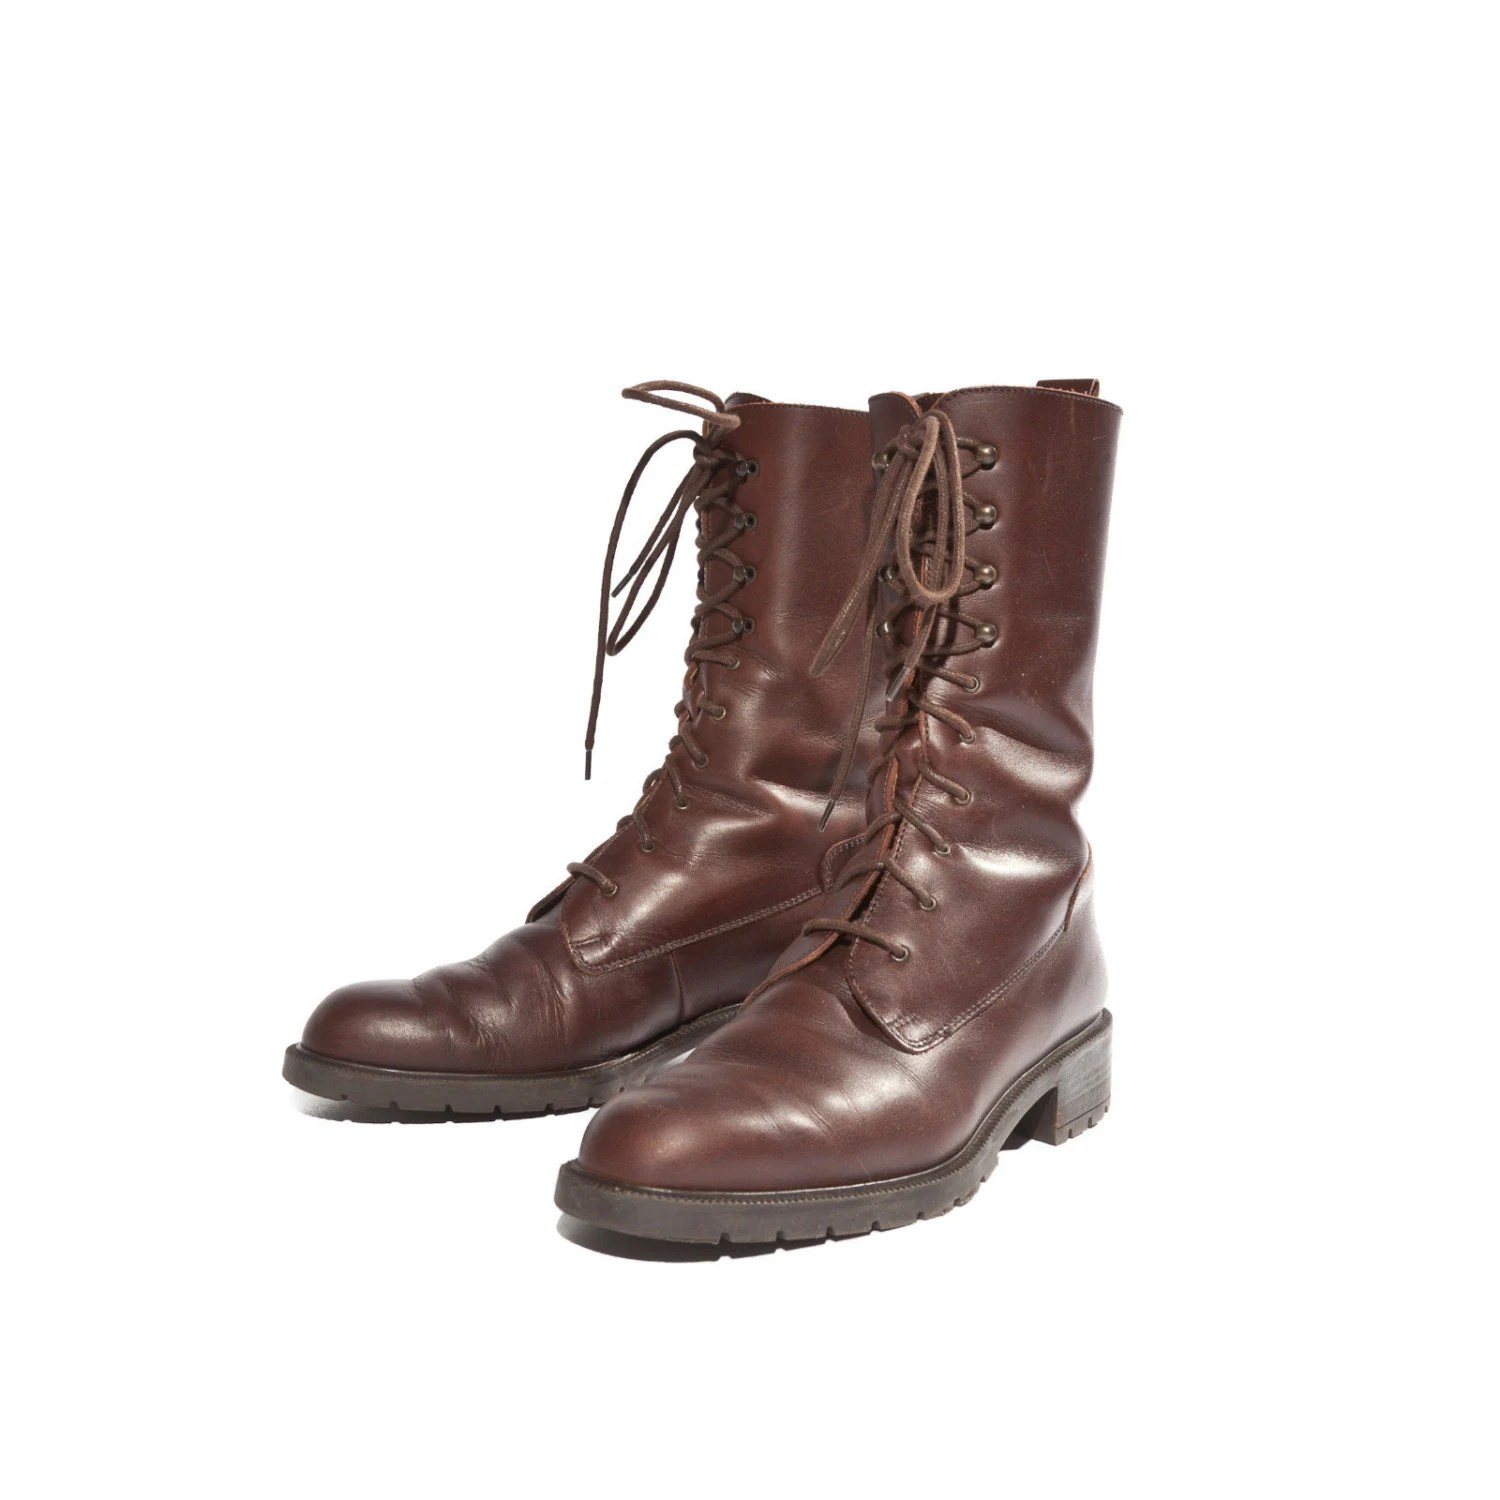 Eddie Bauer Chestnut Brown Leather Lace Up Ankle Boots By